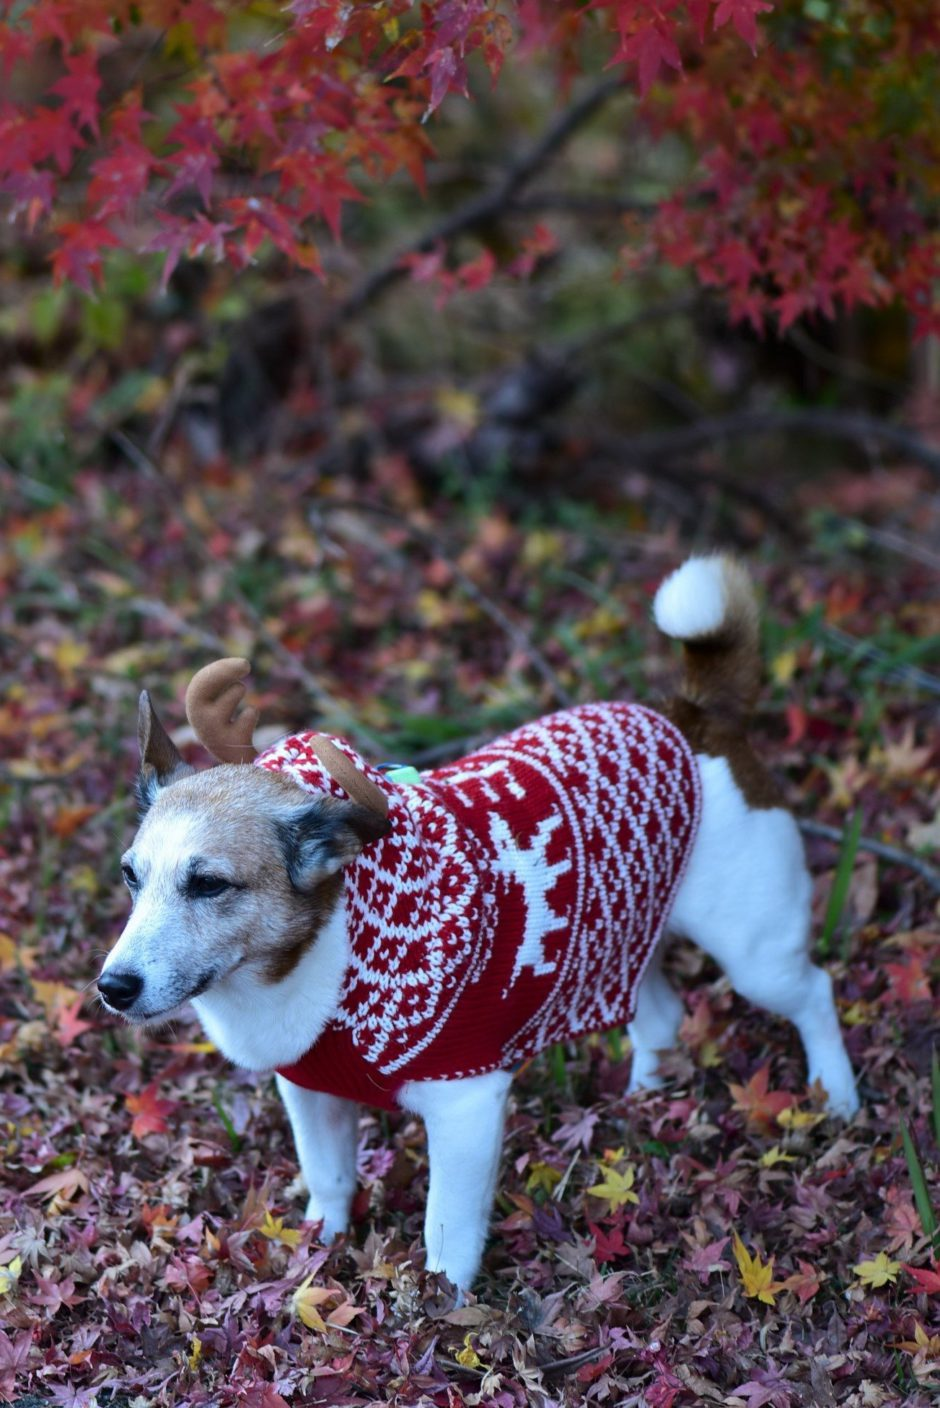 My dog wearing a sweter